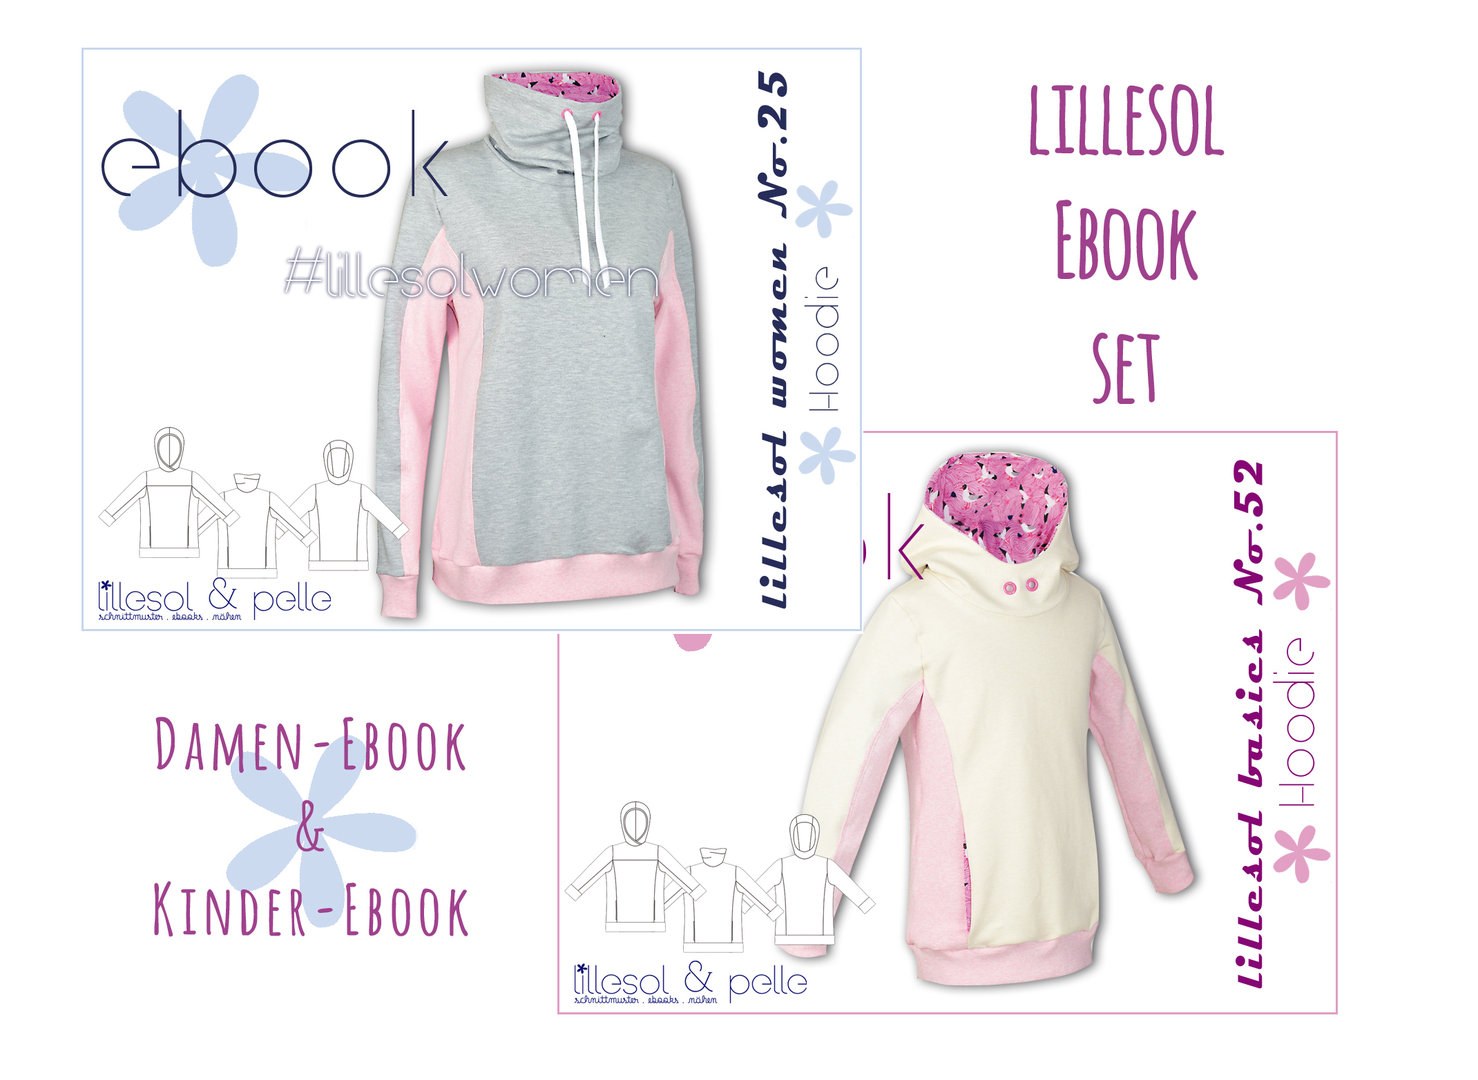 lillesol ebook set basics No.52 und women No.25 * mit Video-Nähanleitung *